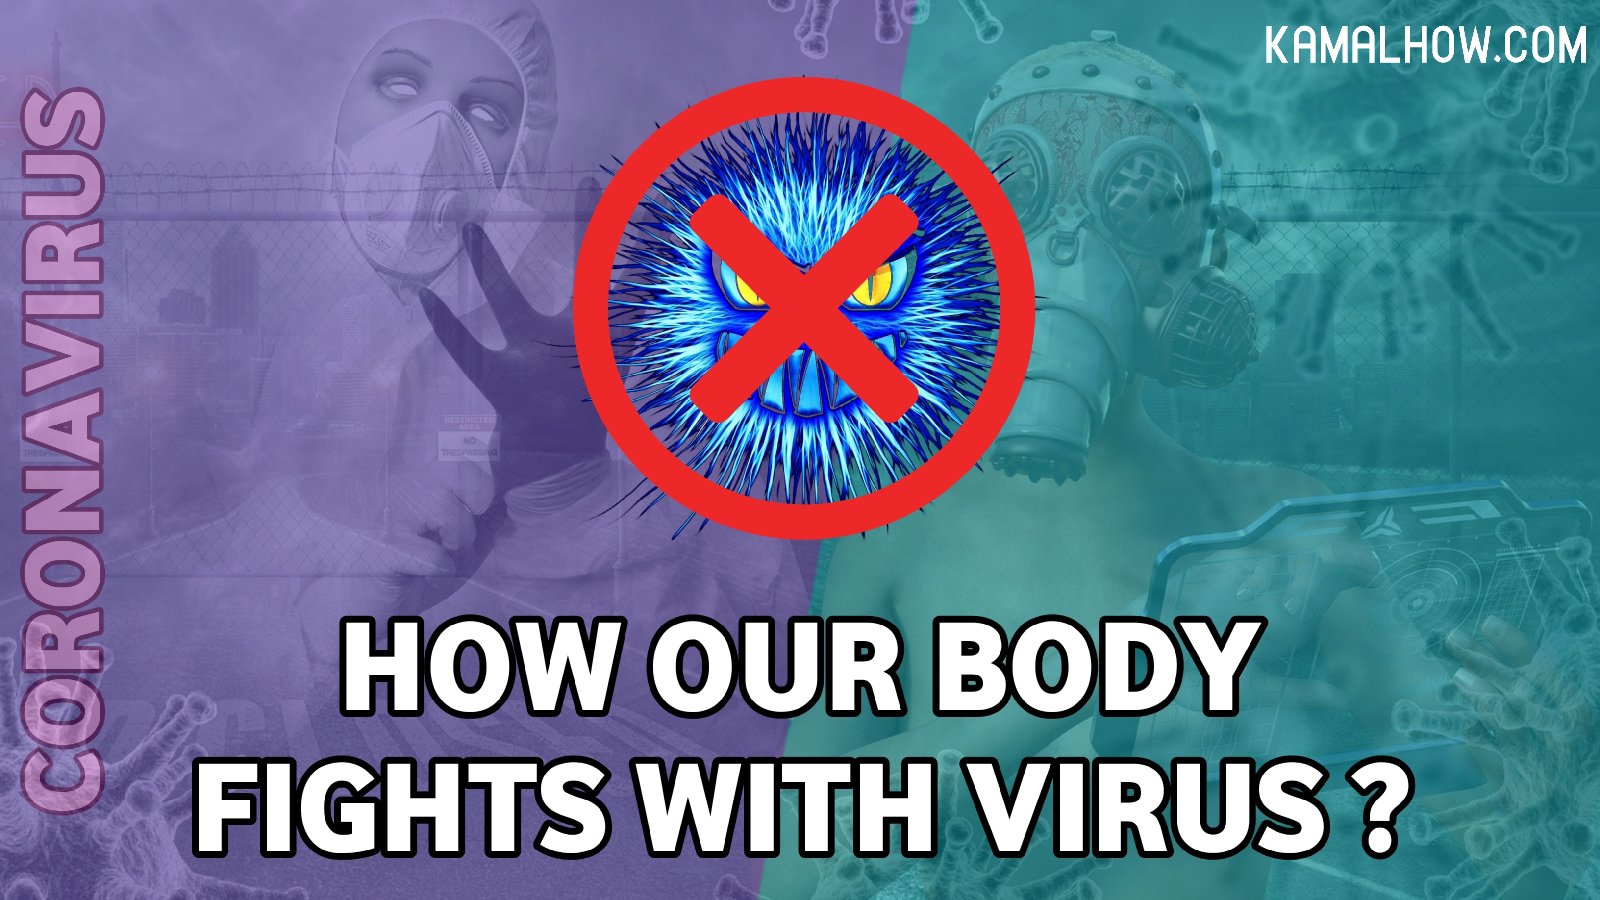 how our body fights with virus